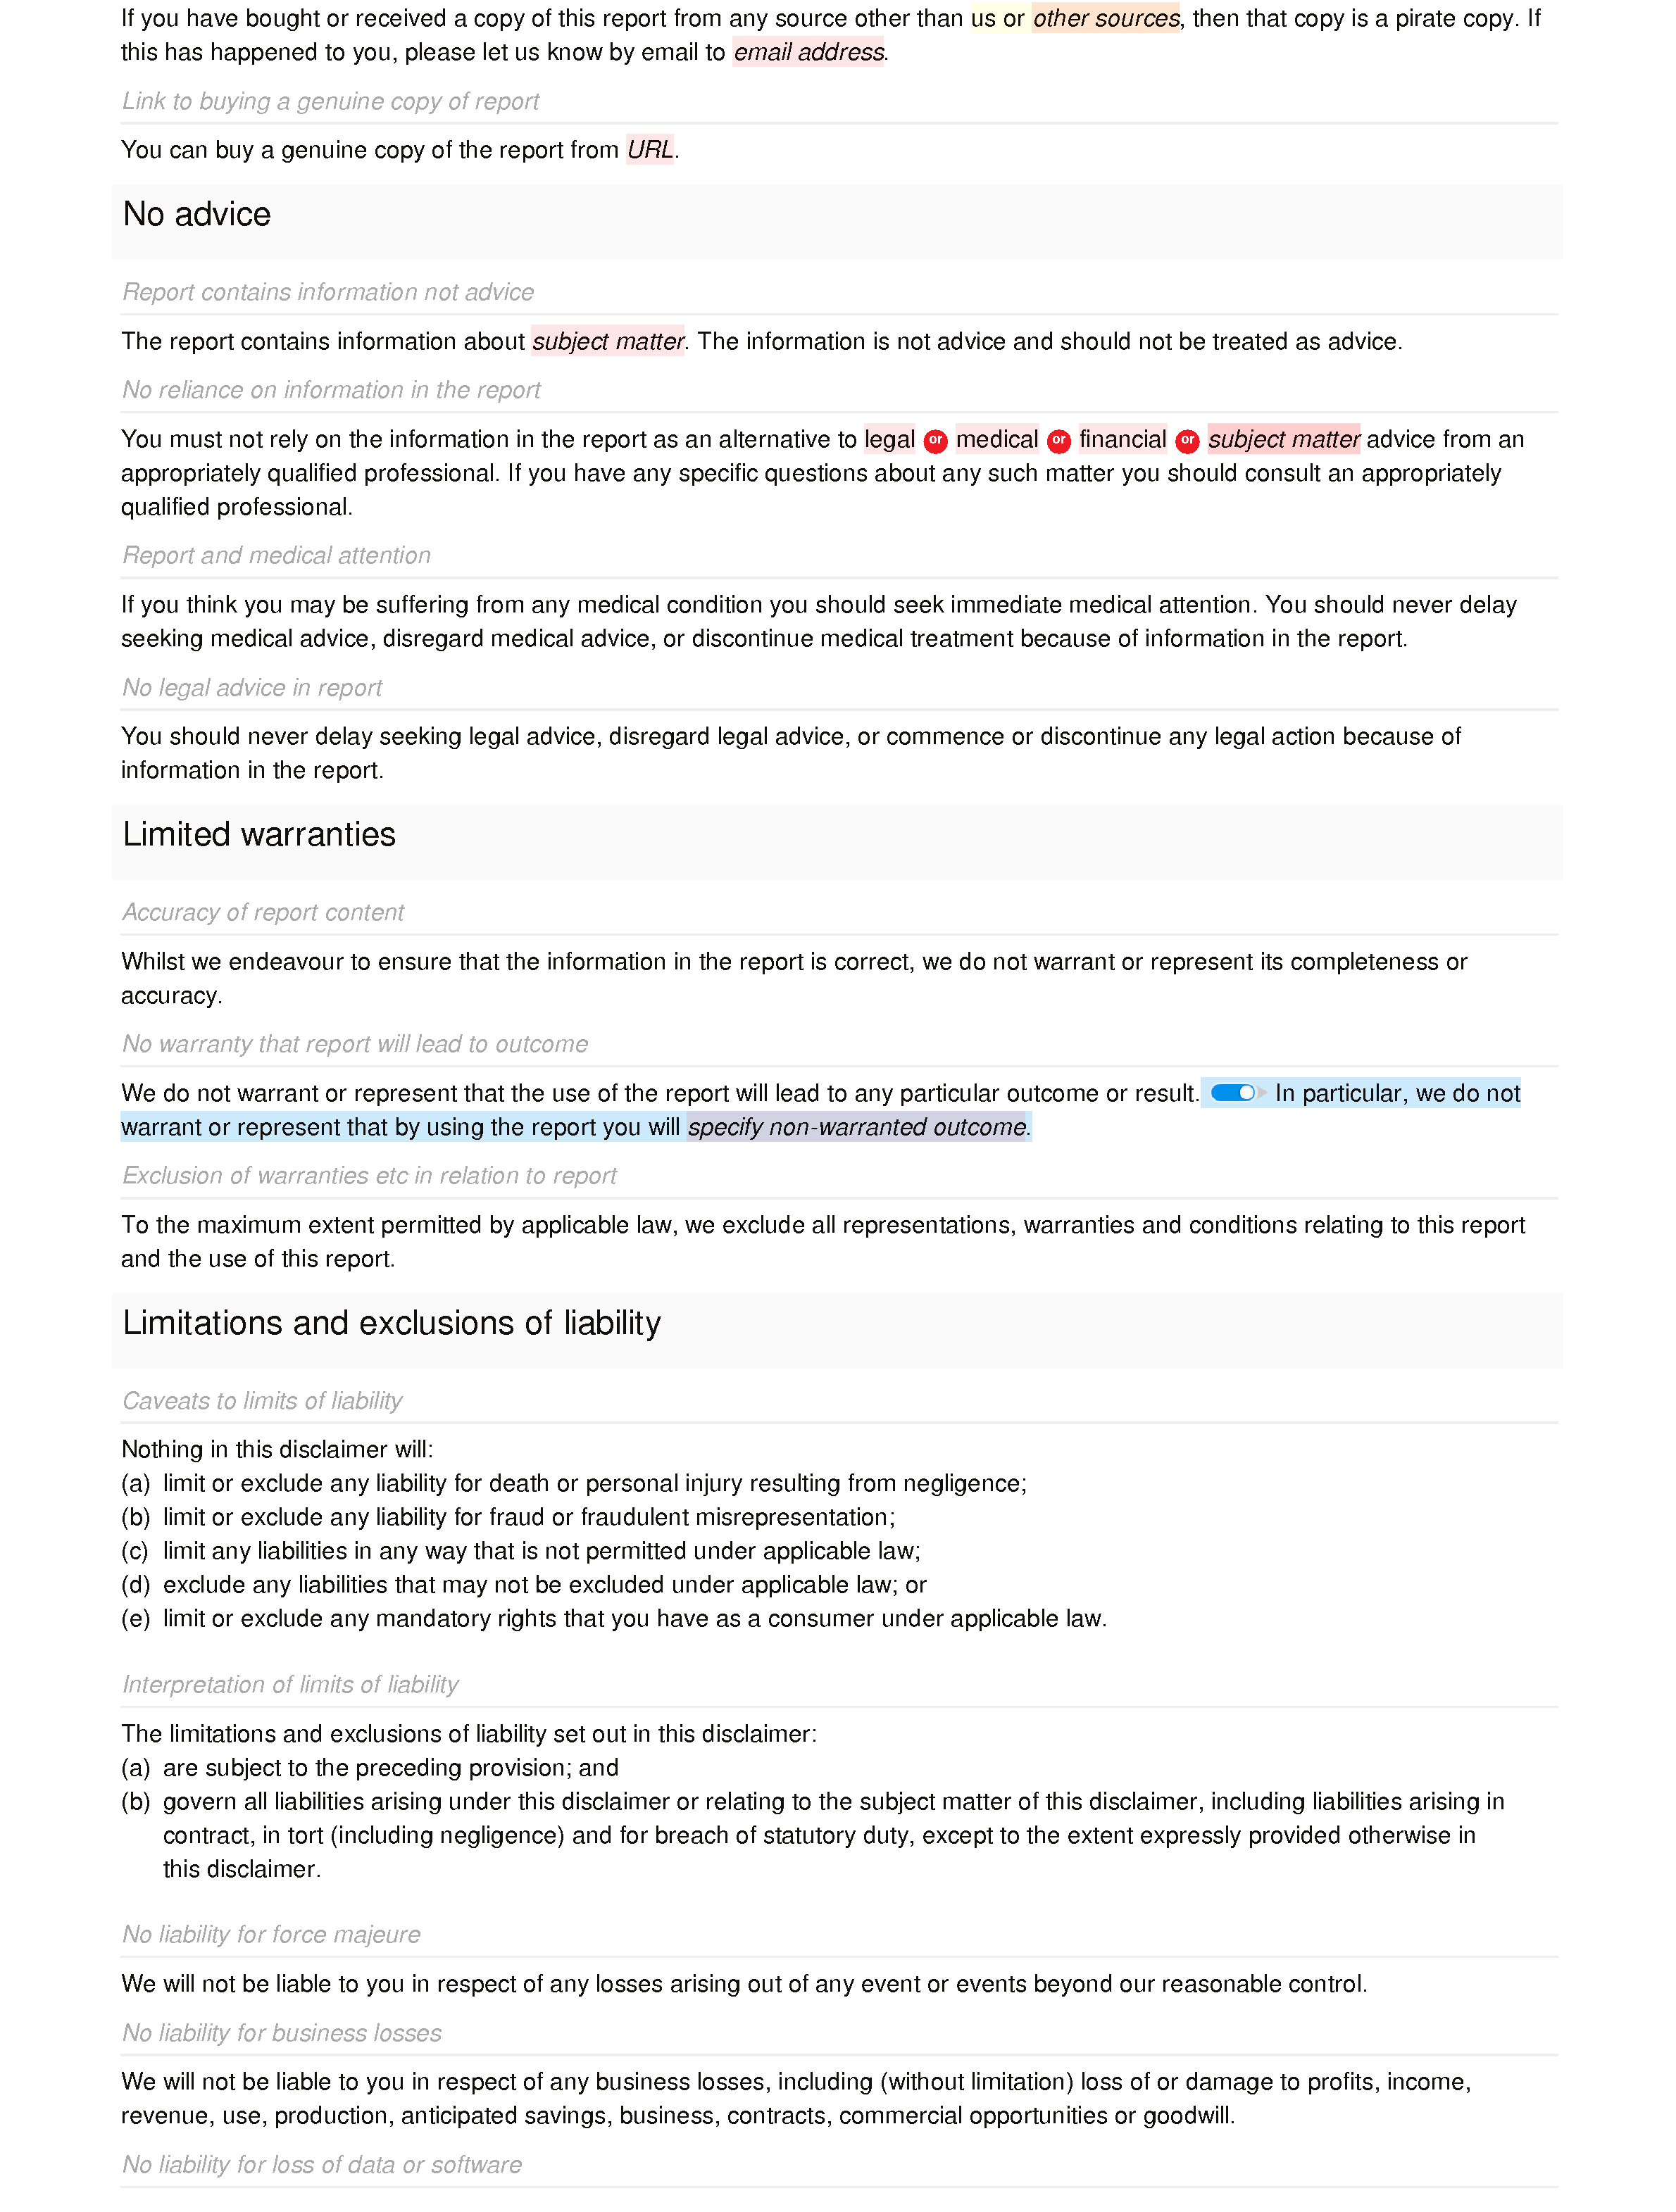 Report disclaimer document editor preview